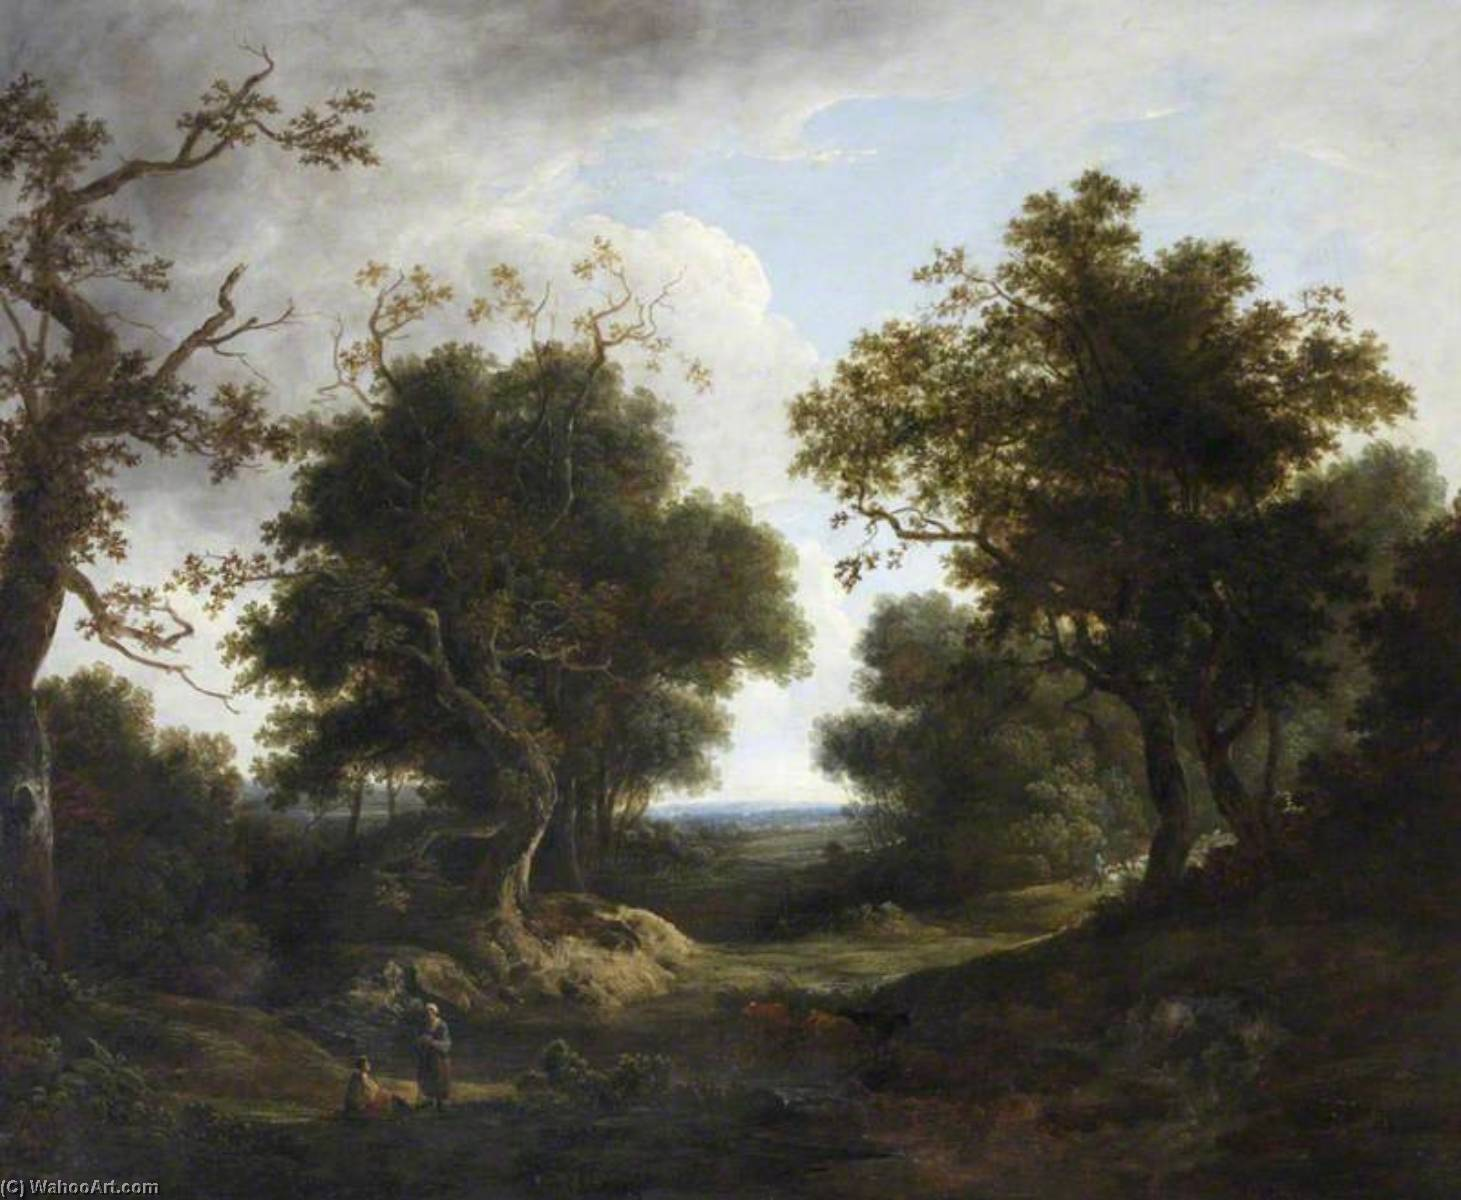 Wooded Landscape with Cattle, Sheep and Peasant Figures by a River, Oil On Canvas by Benjamin Barker Ii